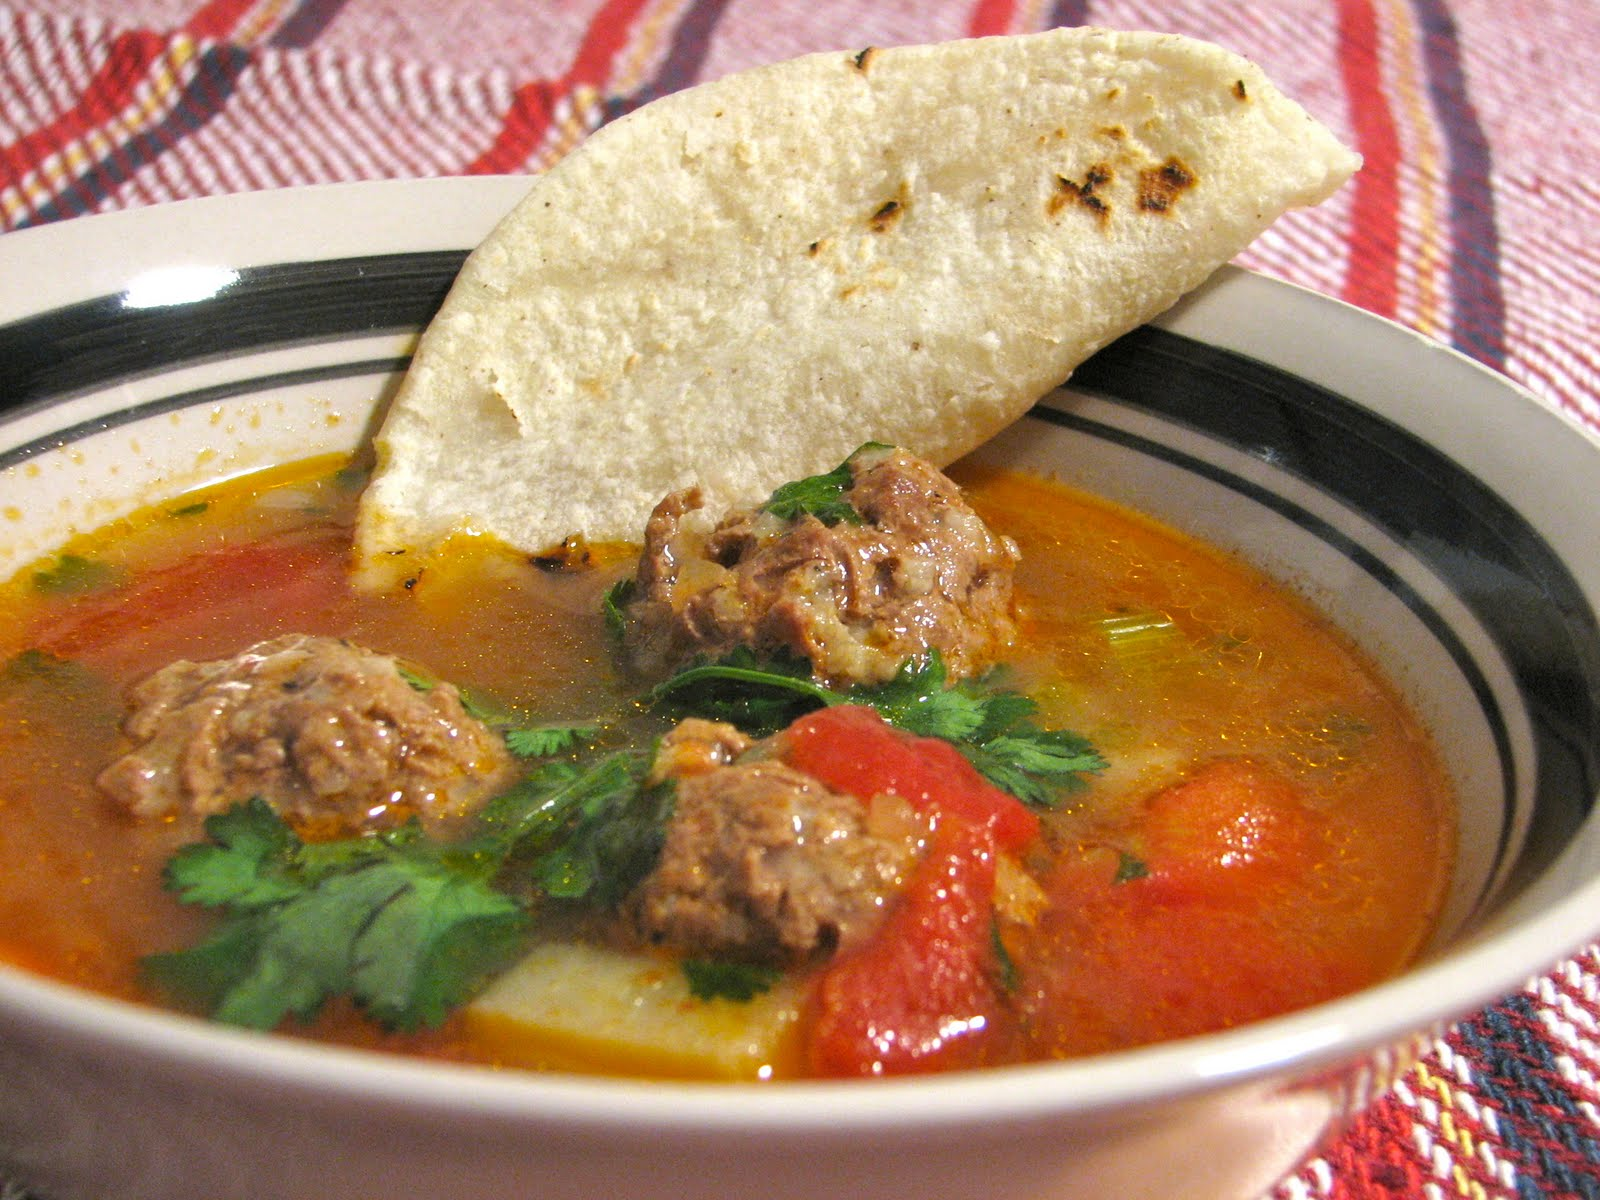 Food for Hunters: Venison Albondigas Soup (Mexican Meatball Soup)